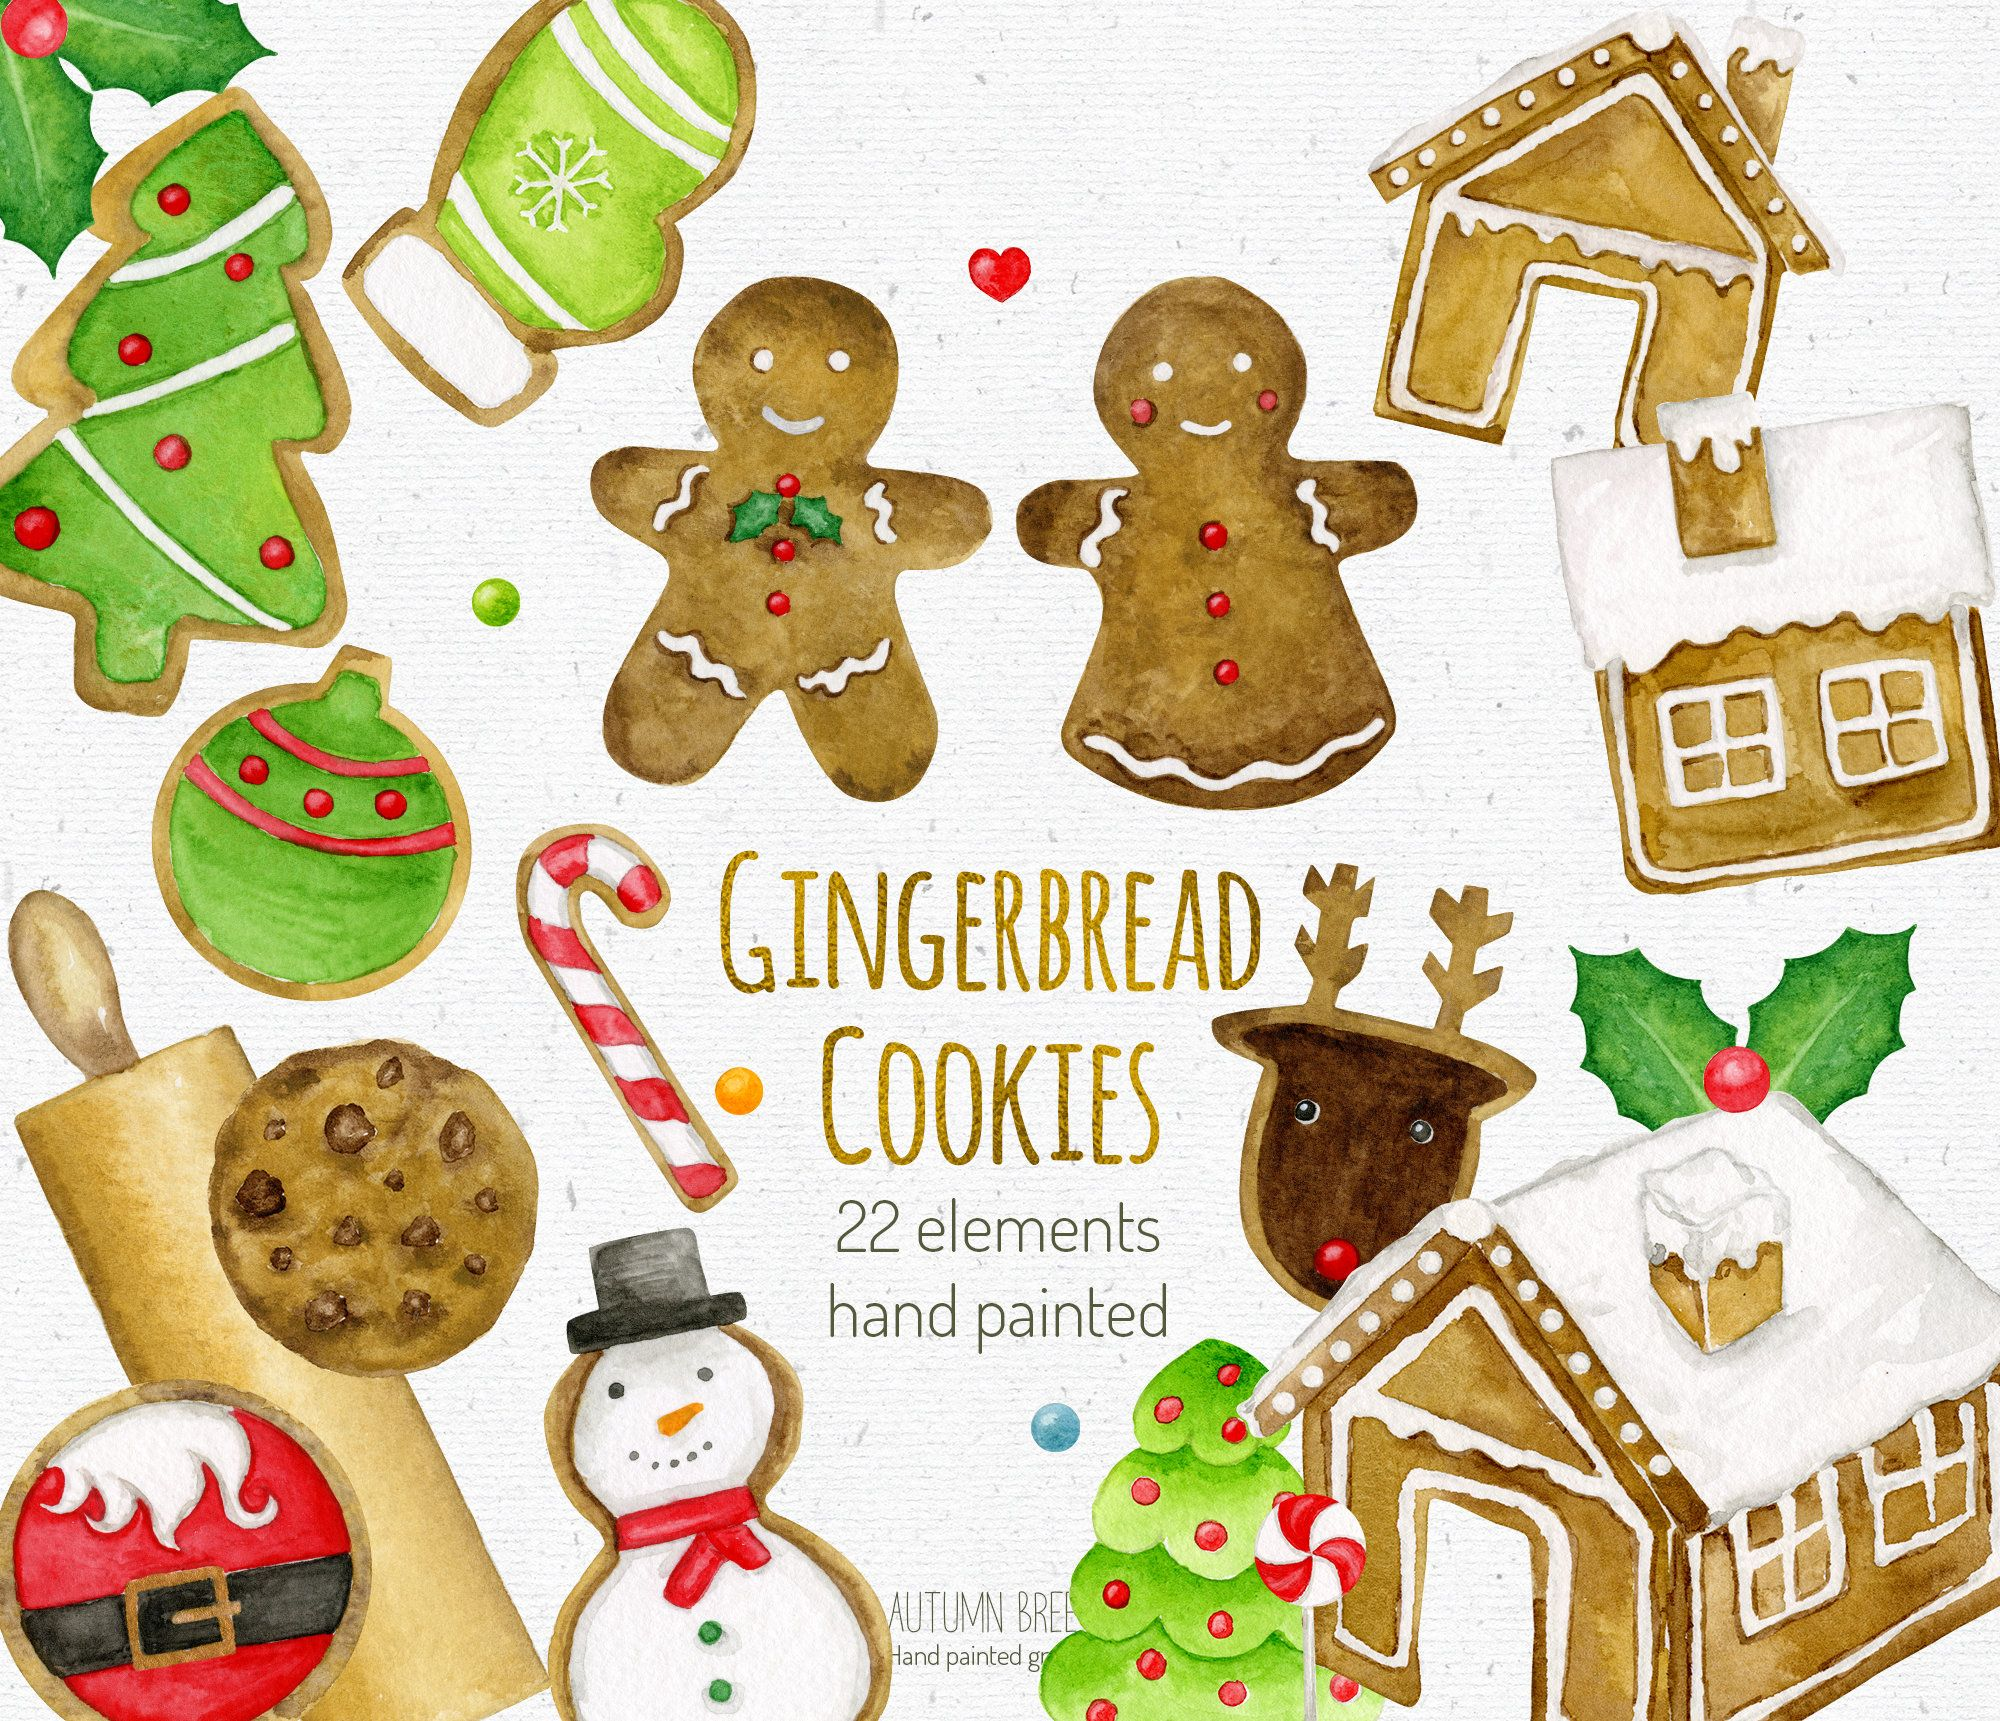 24+ Christmas cookies clipart images ideas in 2021